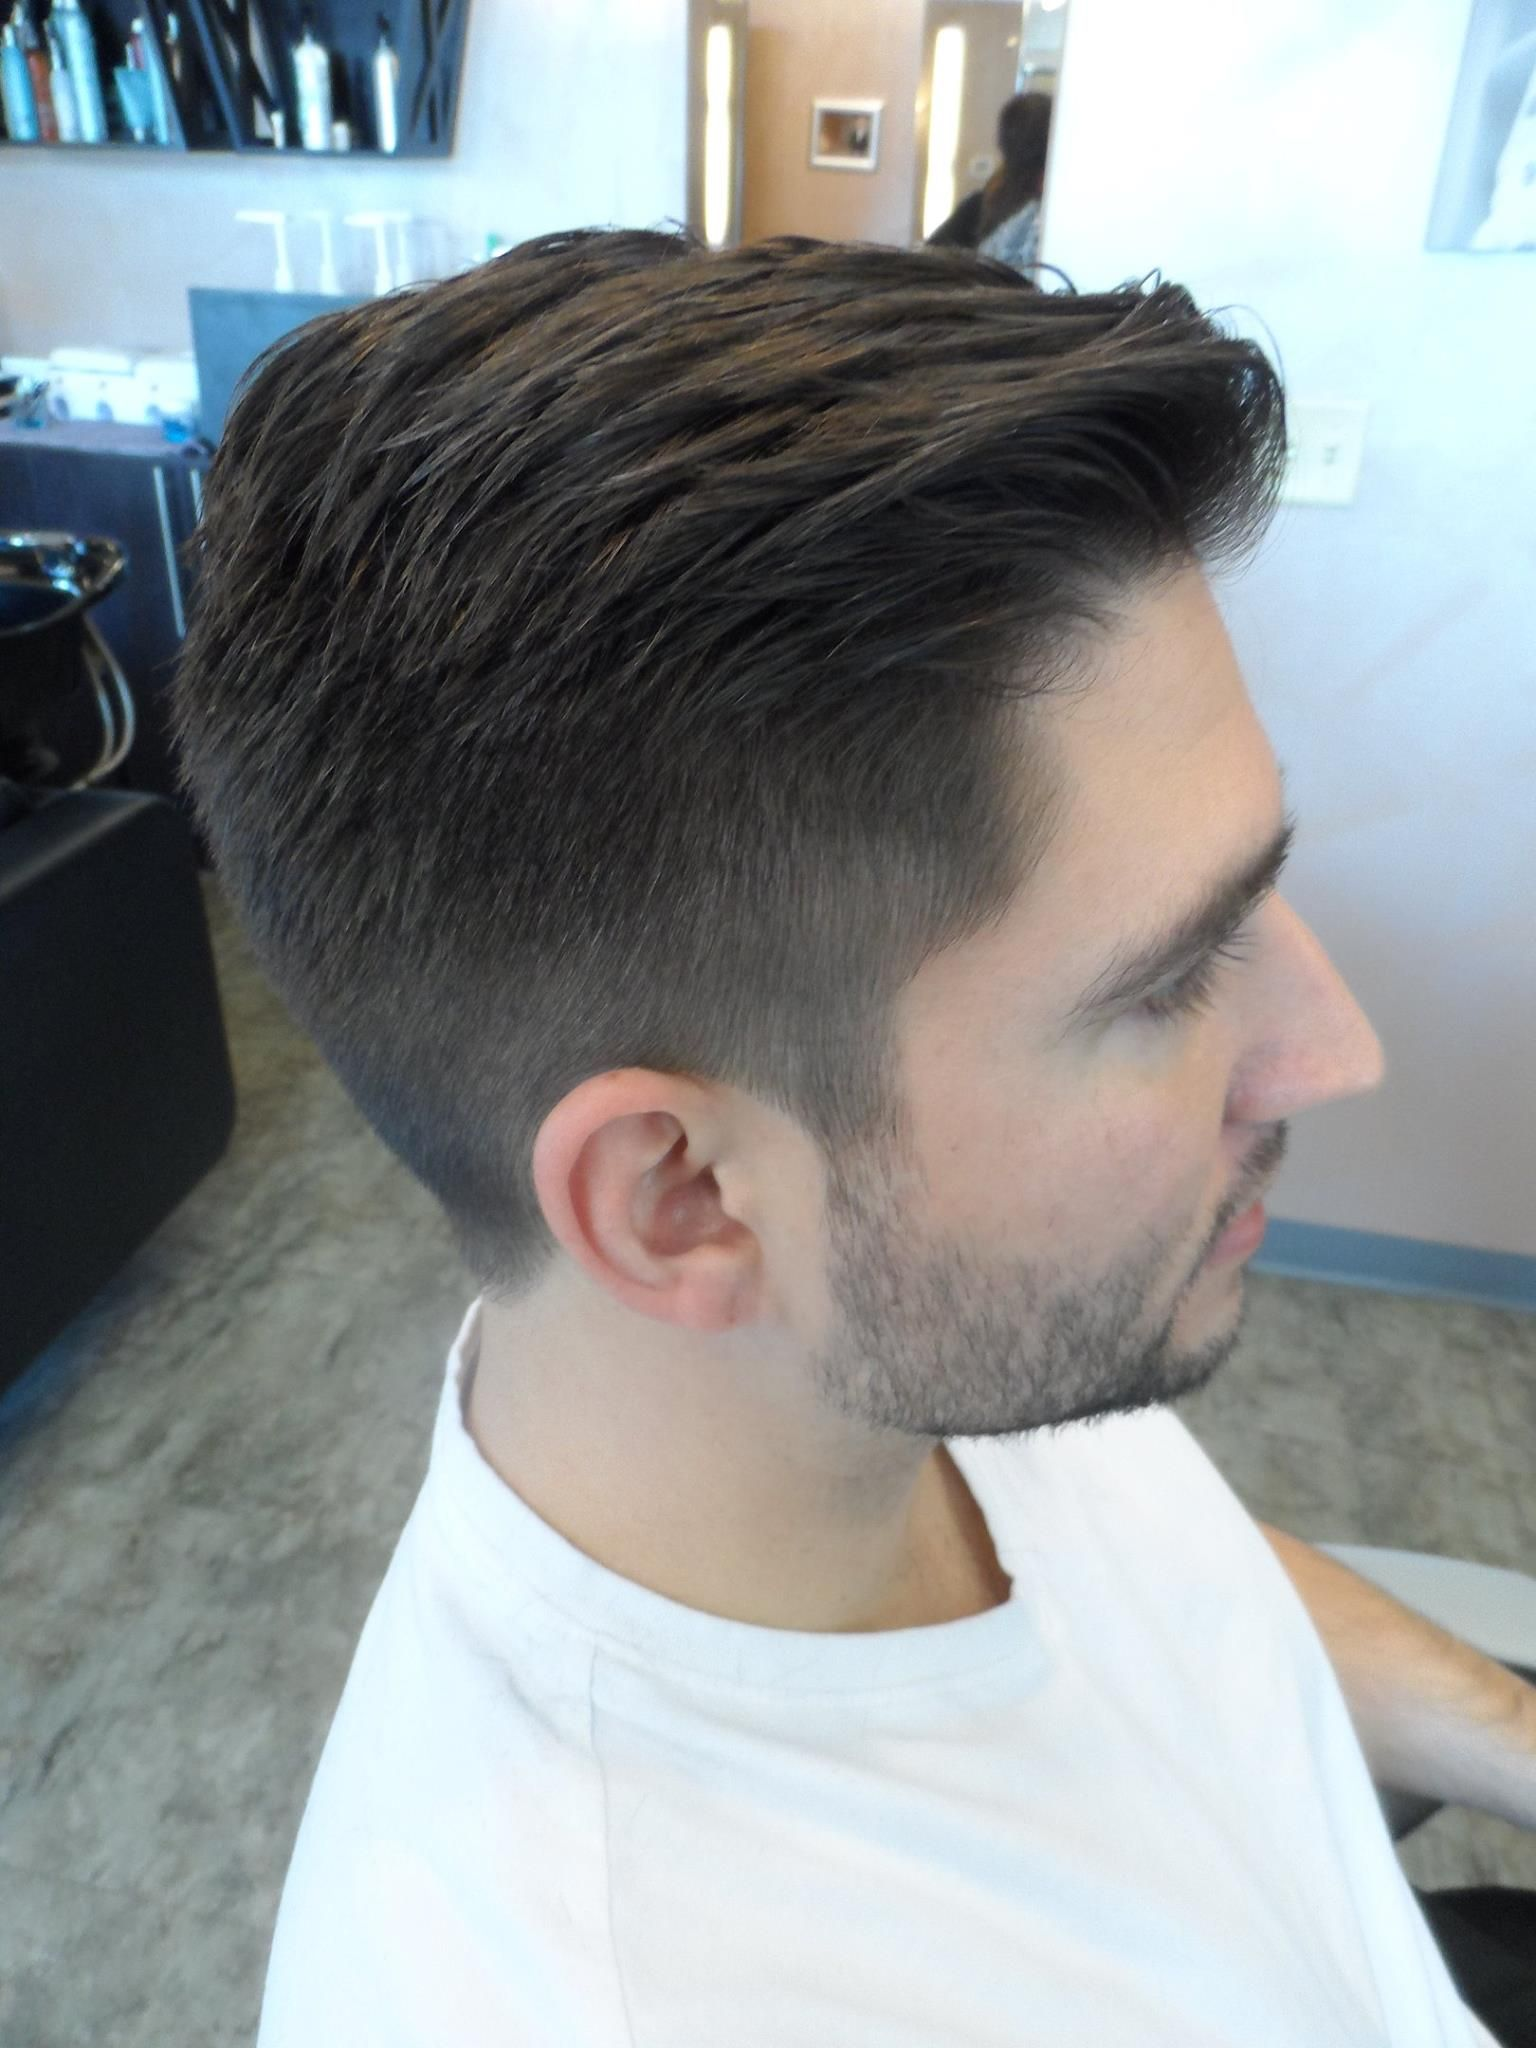 Soft Fade Mens Haircut With Low Rise Pompadour By Erin Conn Www Beinspiredsalon Com 608 271 2771 Menshairsty Men Haircut Styles Hair Pictures Mens Hairstyles